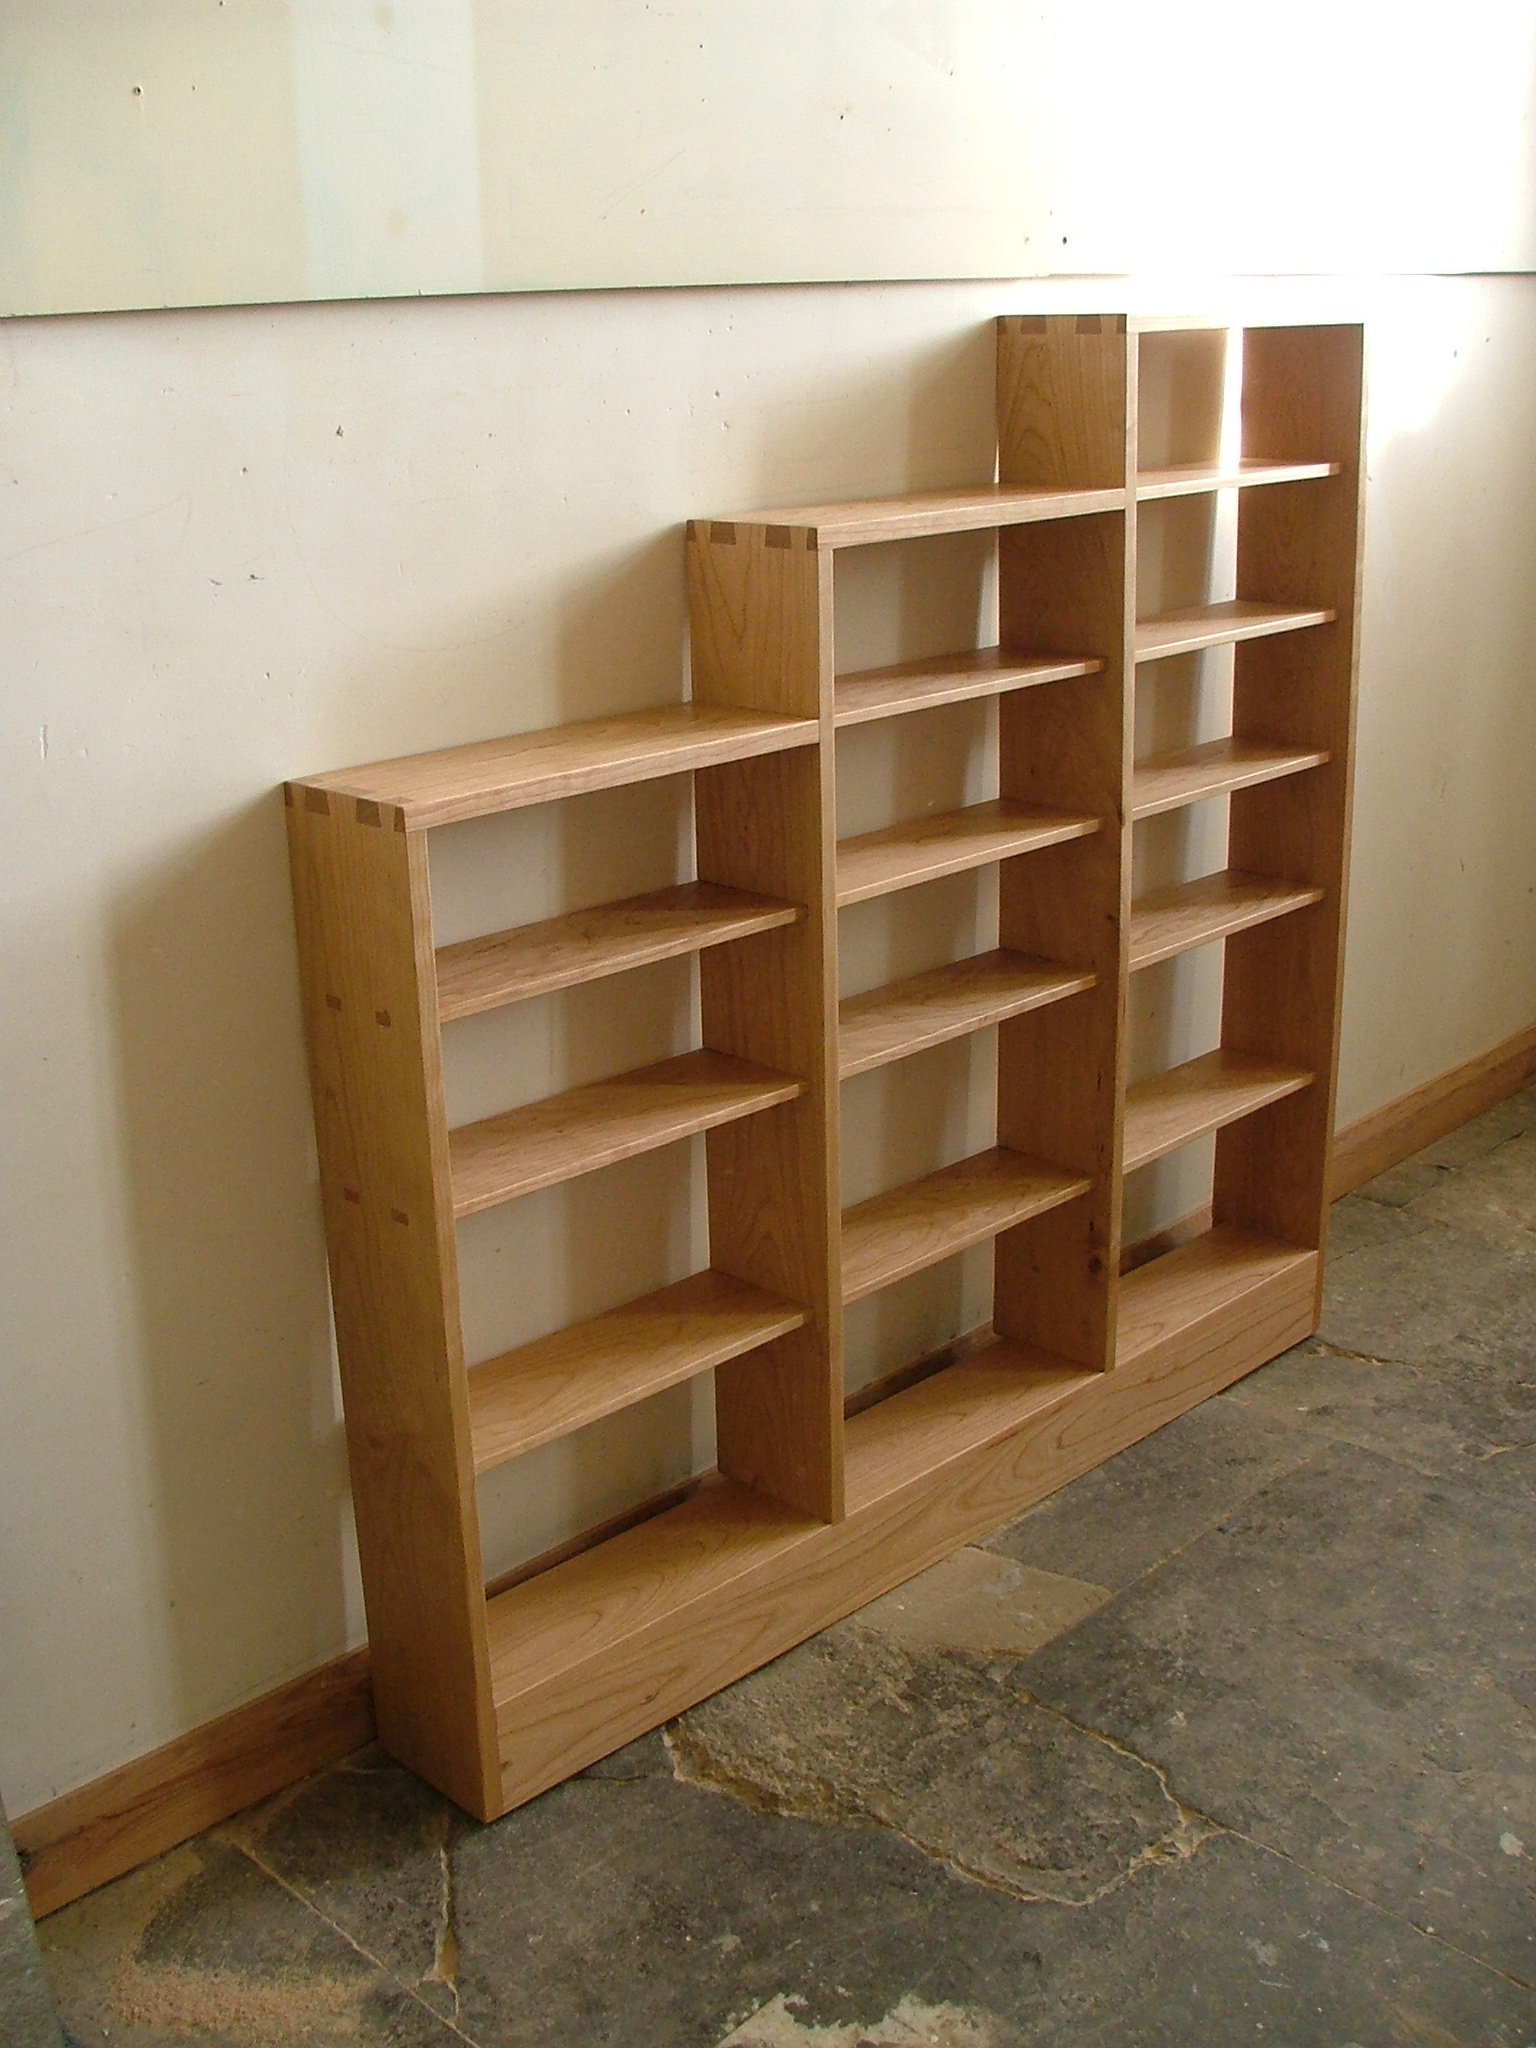 Stepped CD rack